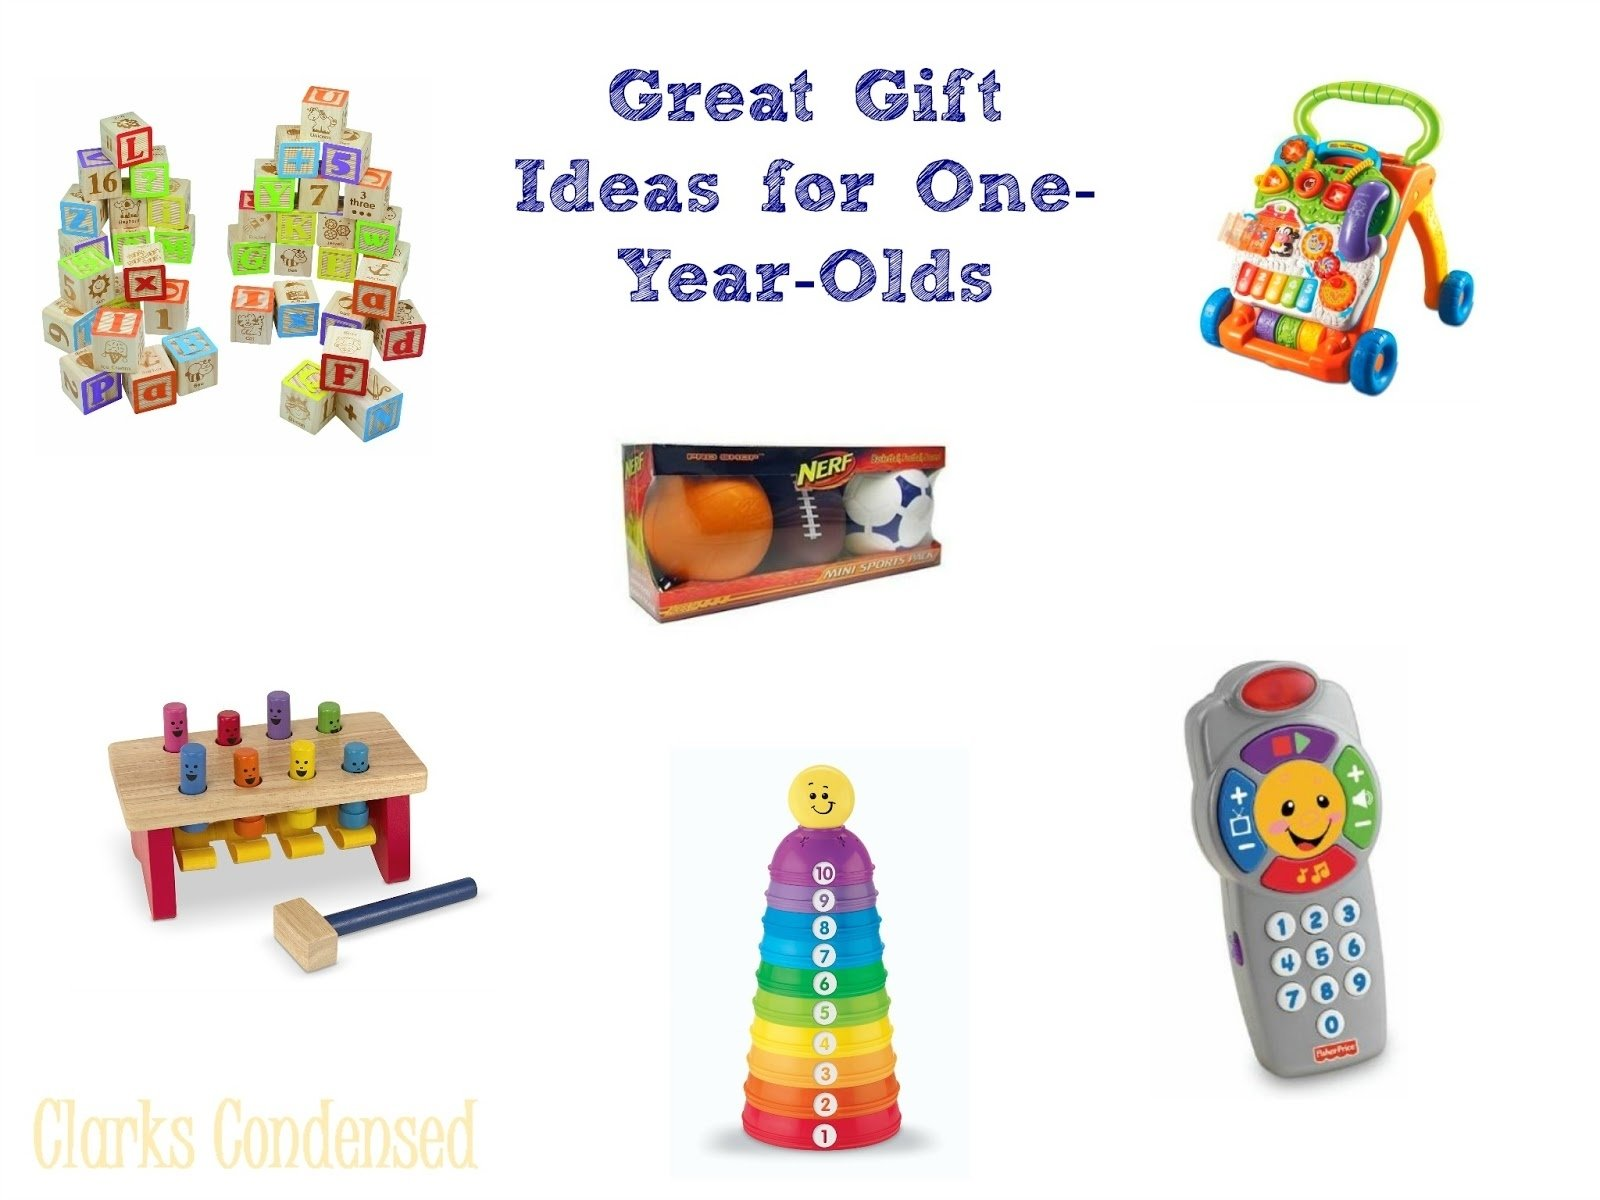 10 Lovely Gift Ideas For One Year Old best gift ideas for a one year old 1 2021